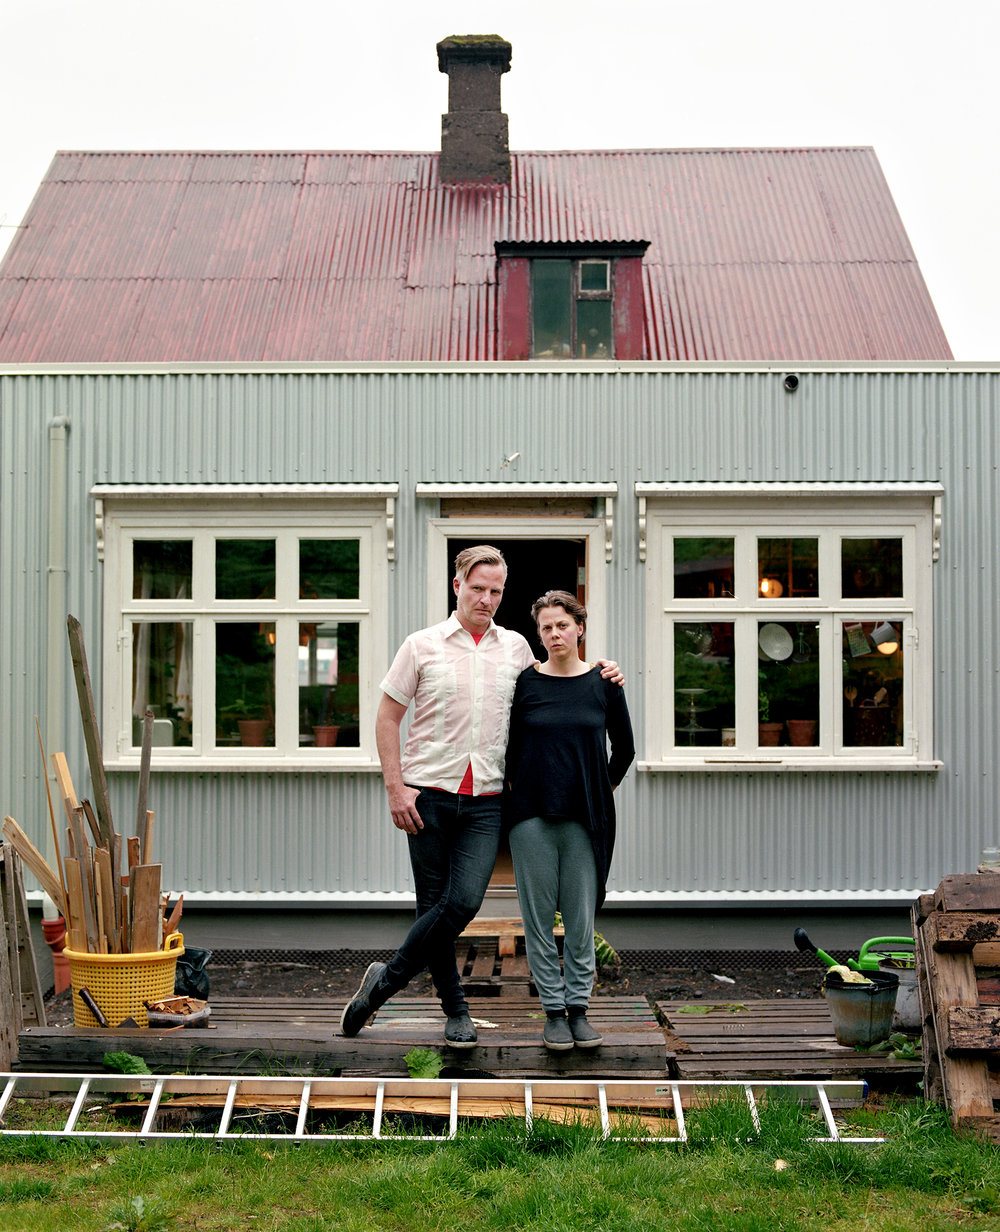 Helgi and Þórunn in their backyard. They rent out the downstairs portion of their house through AirBNB as they creatively renovate. Helgi was looking forward to Sunday as their last guest would be checking out for the end of their hosting season. He planned to play his records without worrying about disturbing their company.